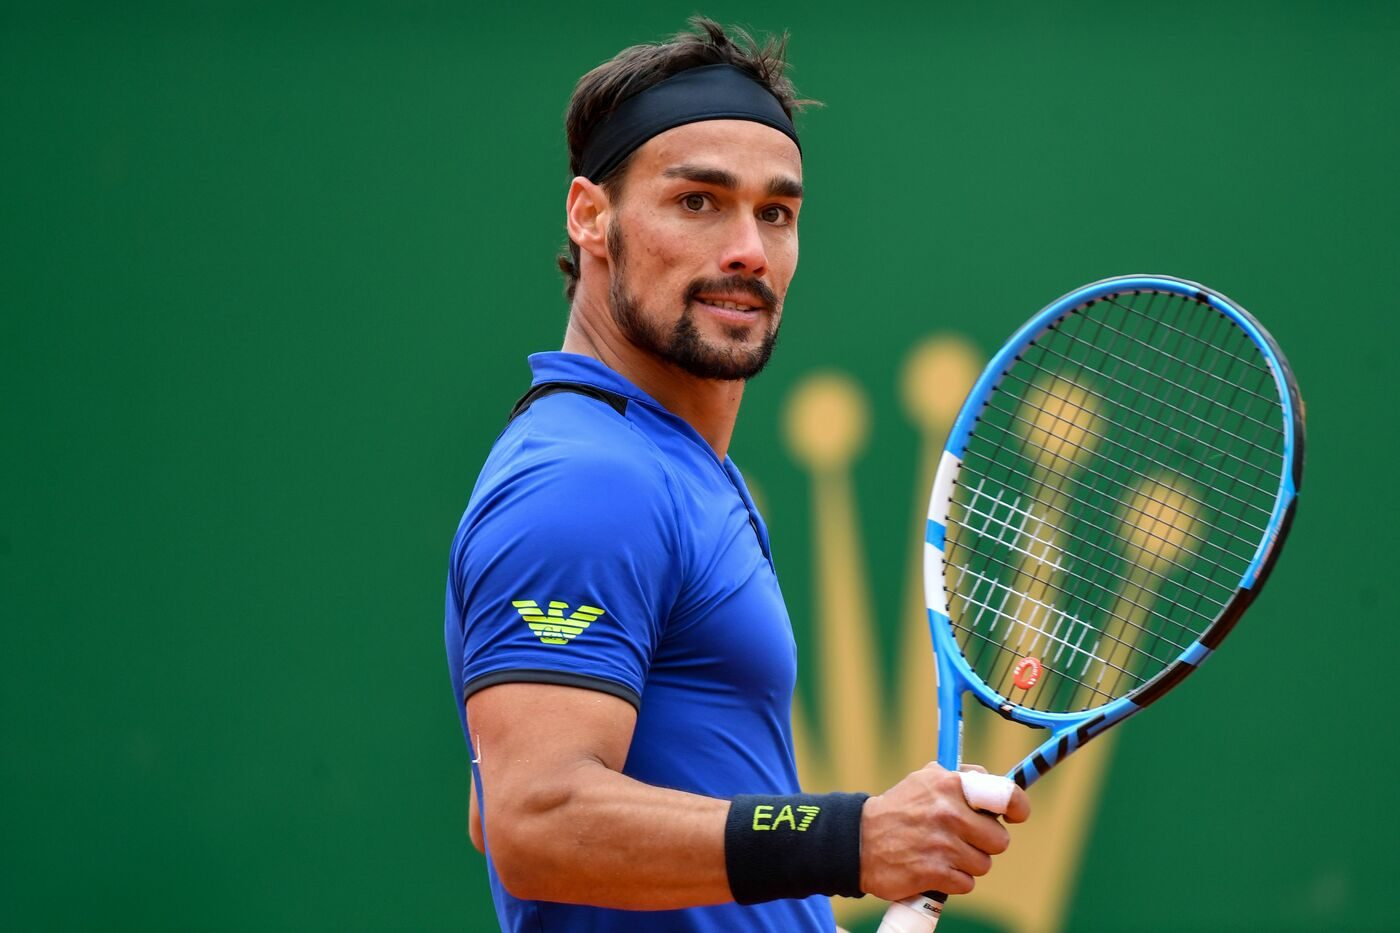 Fabio Fognini | 8 Most Handsome Sportsmen That Will Make Your Jaw Drop | Her Beauty